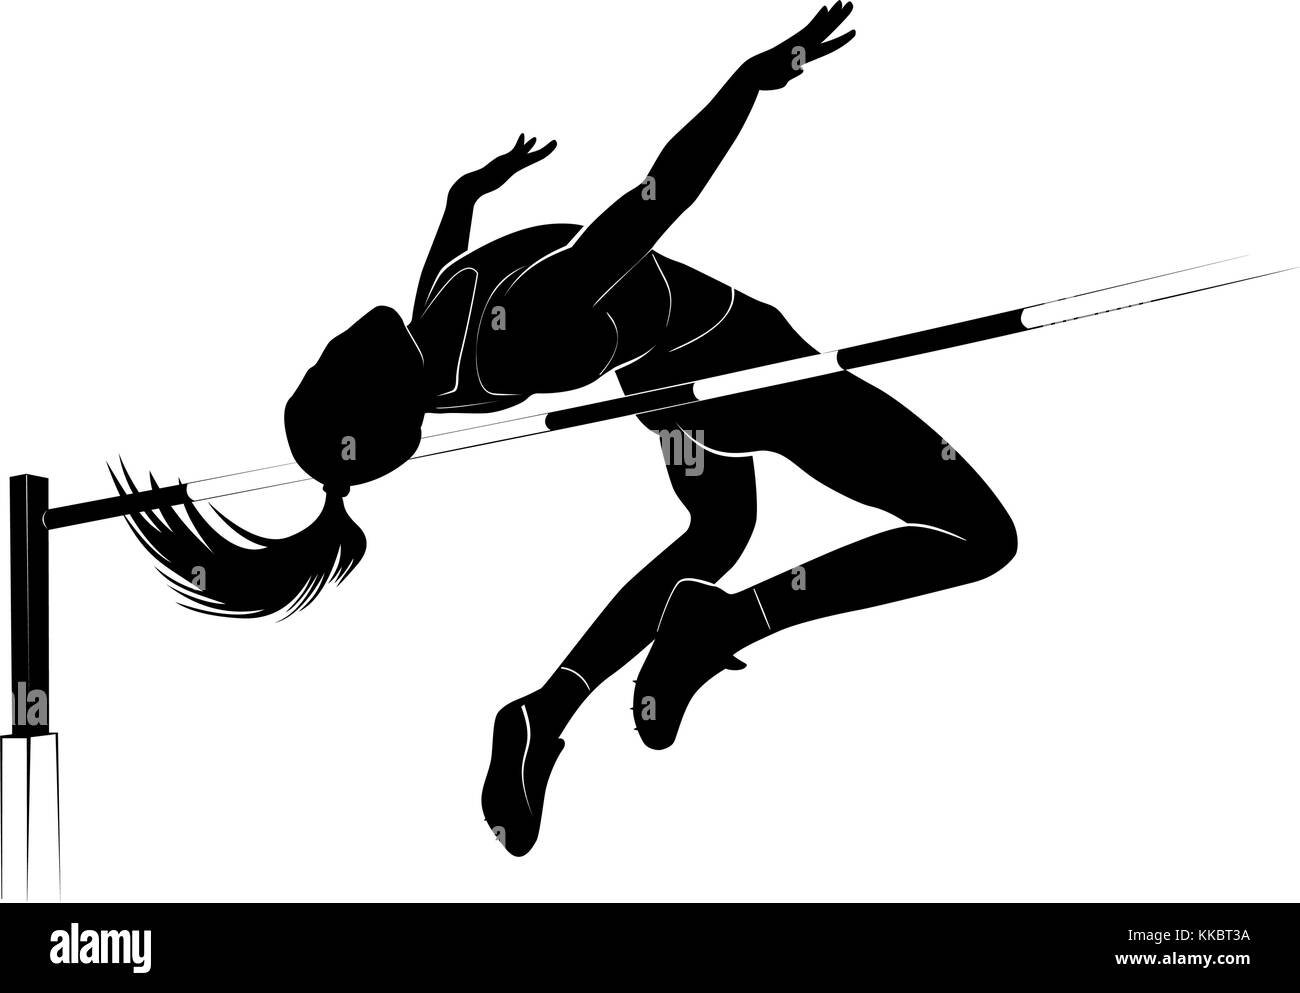 Vector silhouette female athlete jumping over the bar. High jump athletic competition background Stock Vector